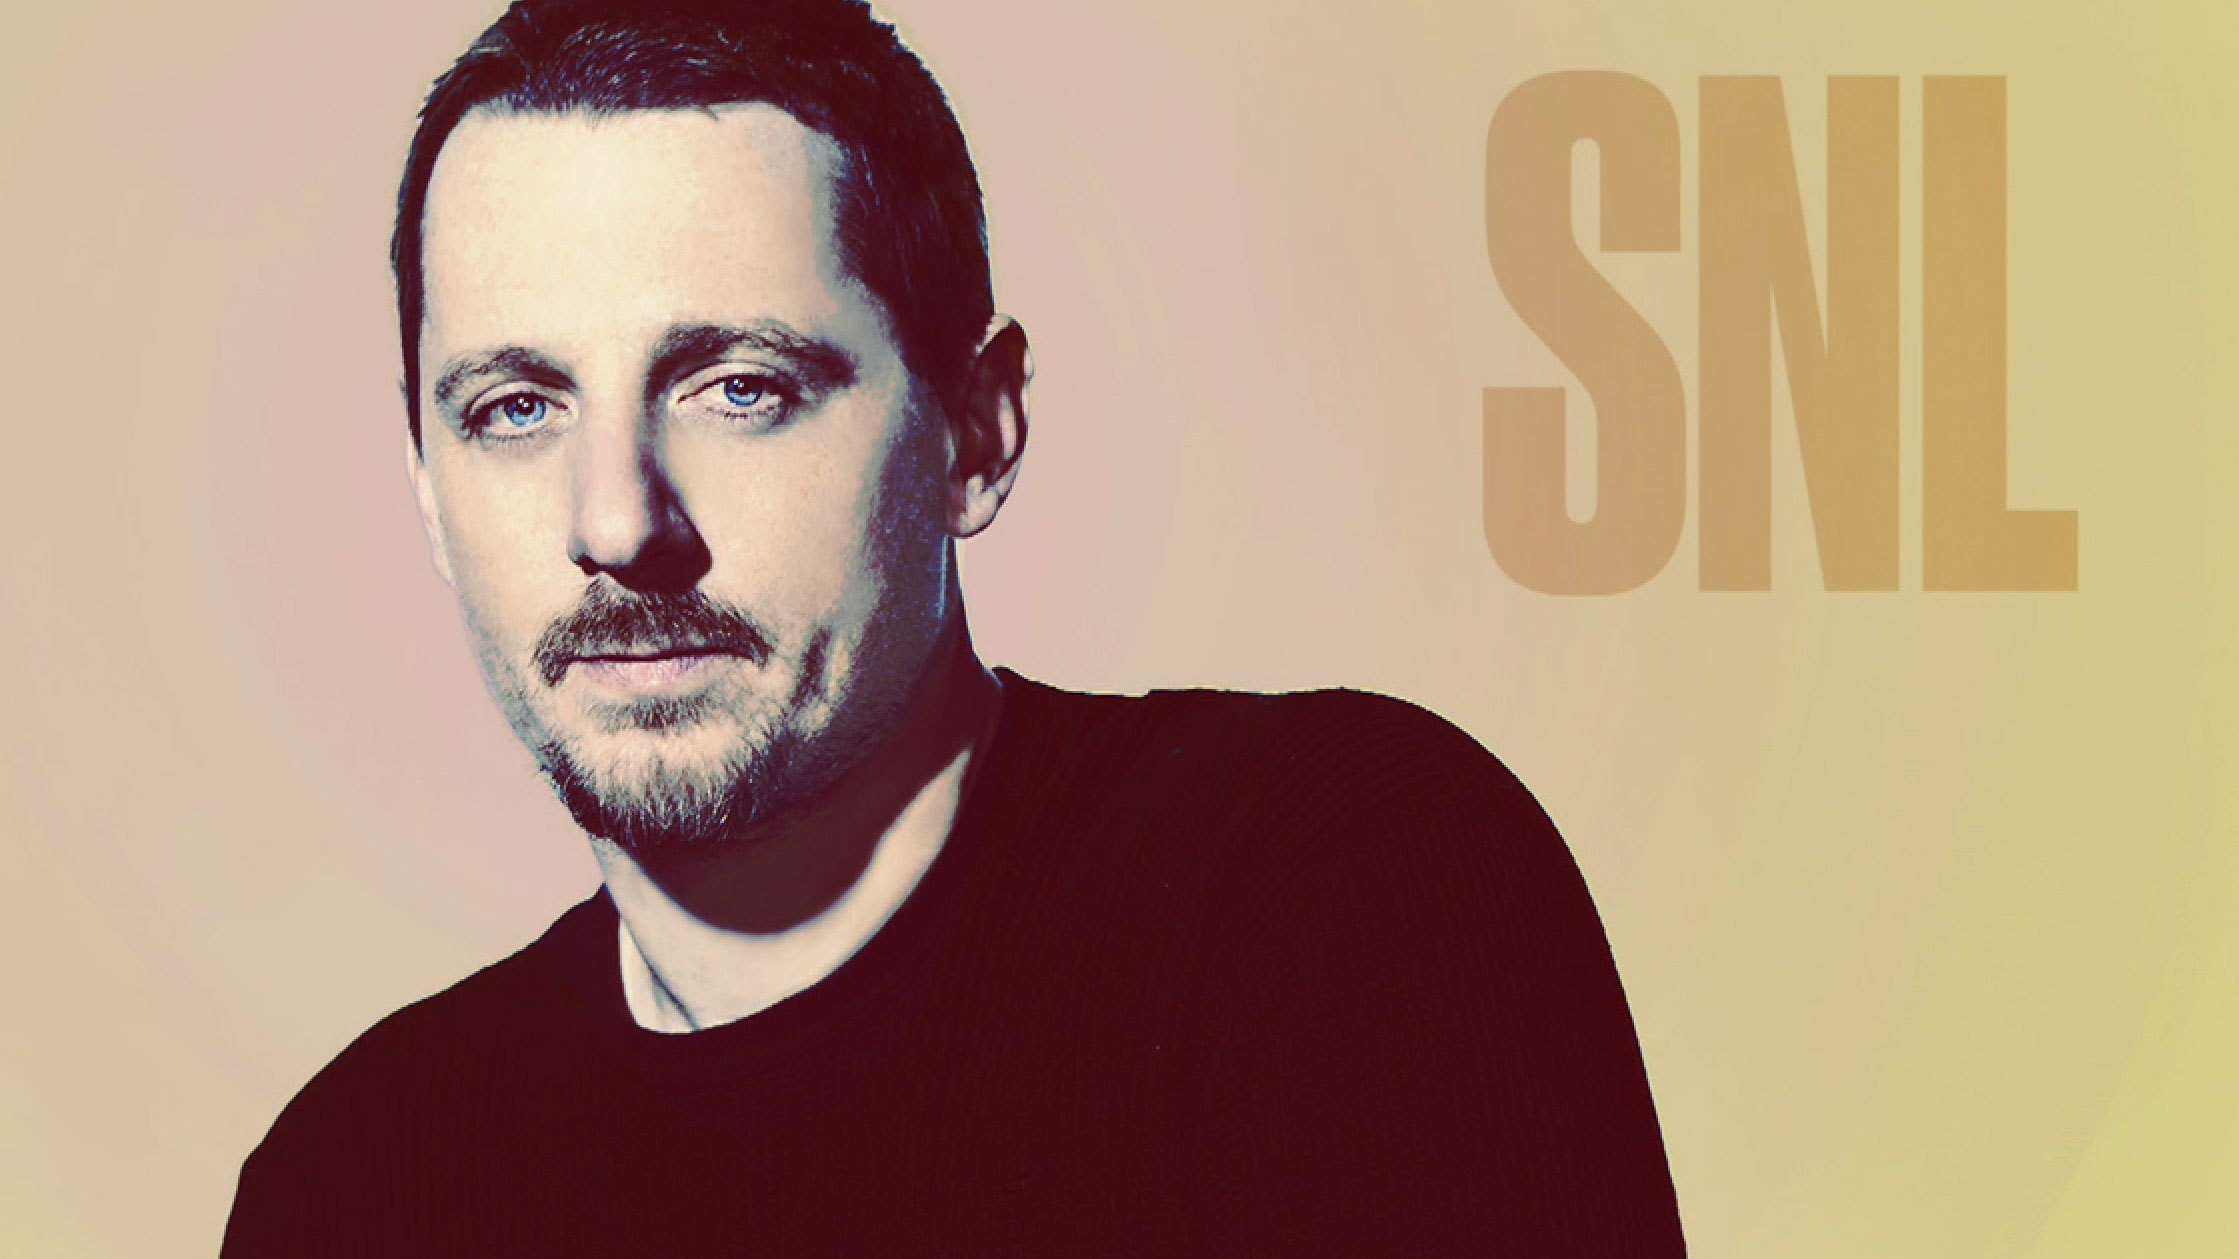 Watch sturgill simpson and his 11 piece band perform on Sturgill simpson grammy performance